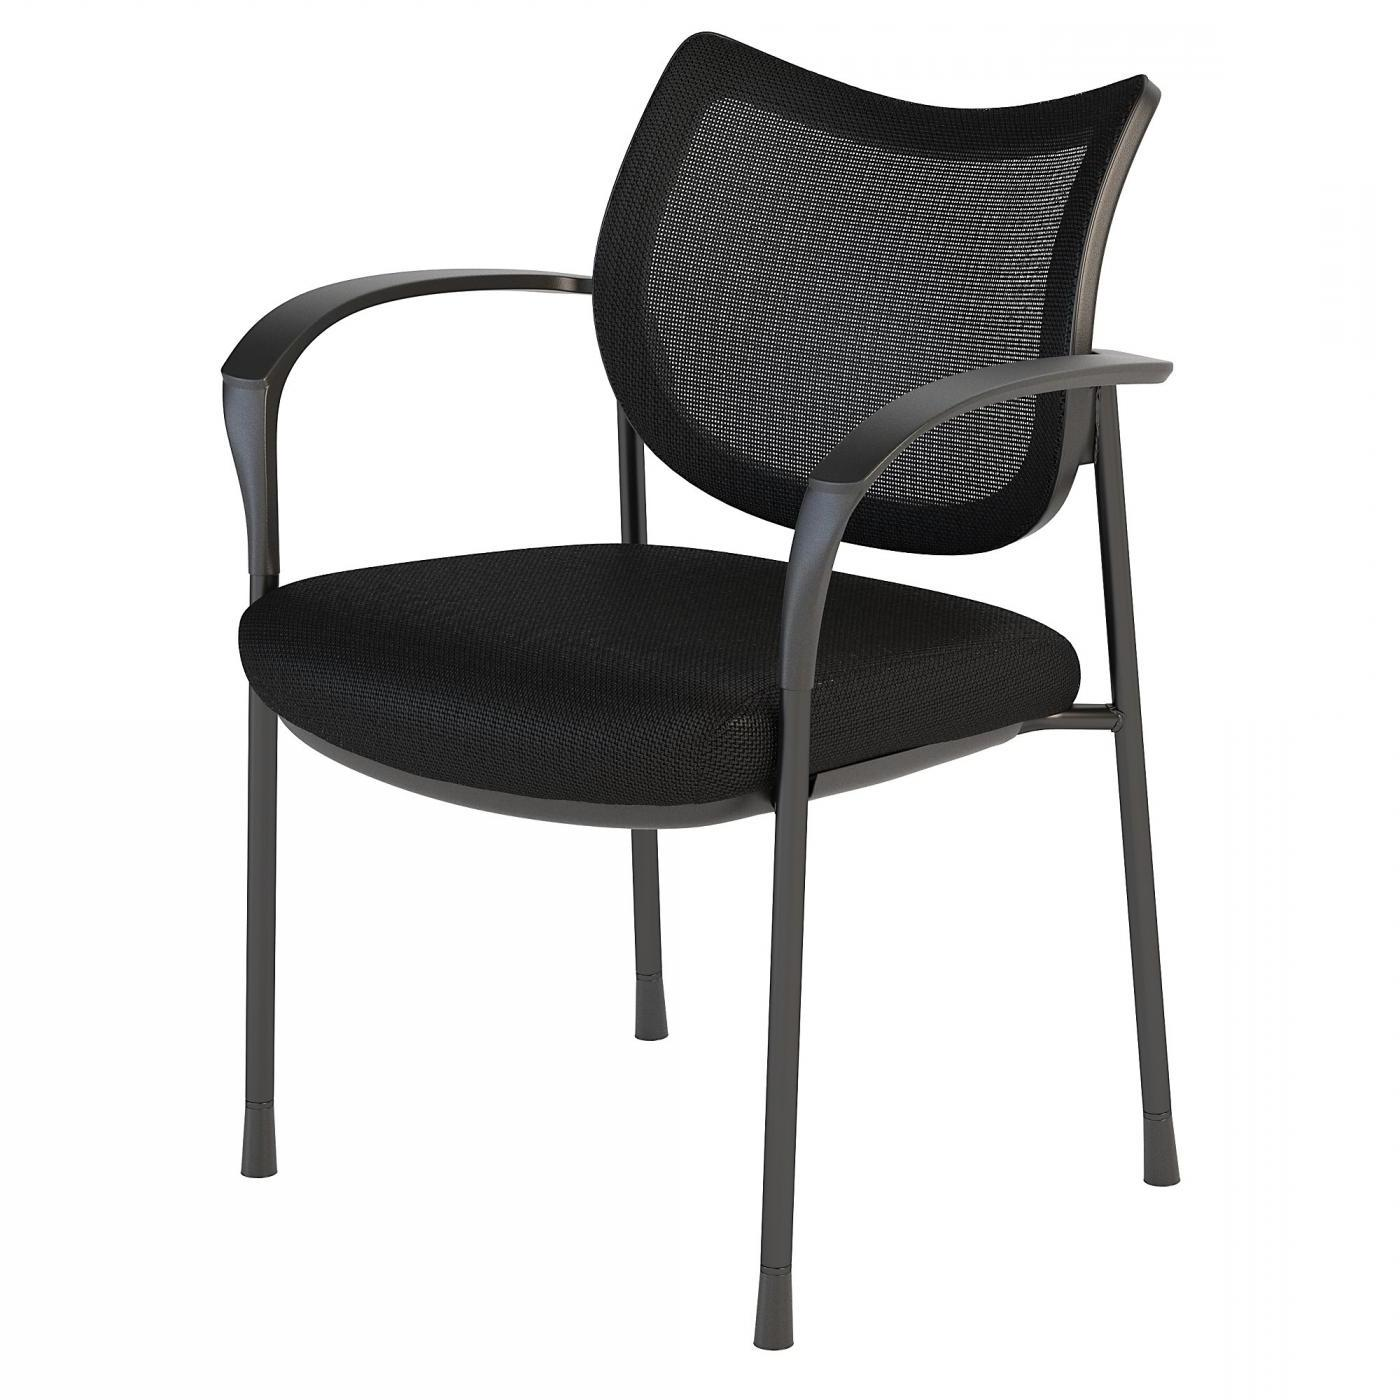 <font color=#c60><b>BUSH BUSINESS FURNITURE CORPORATE MESH BACK GUEST CHAIR. FREE SHIPPING</font></b> </font></b>